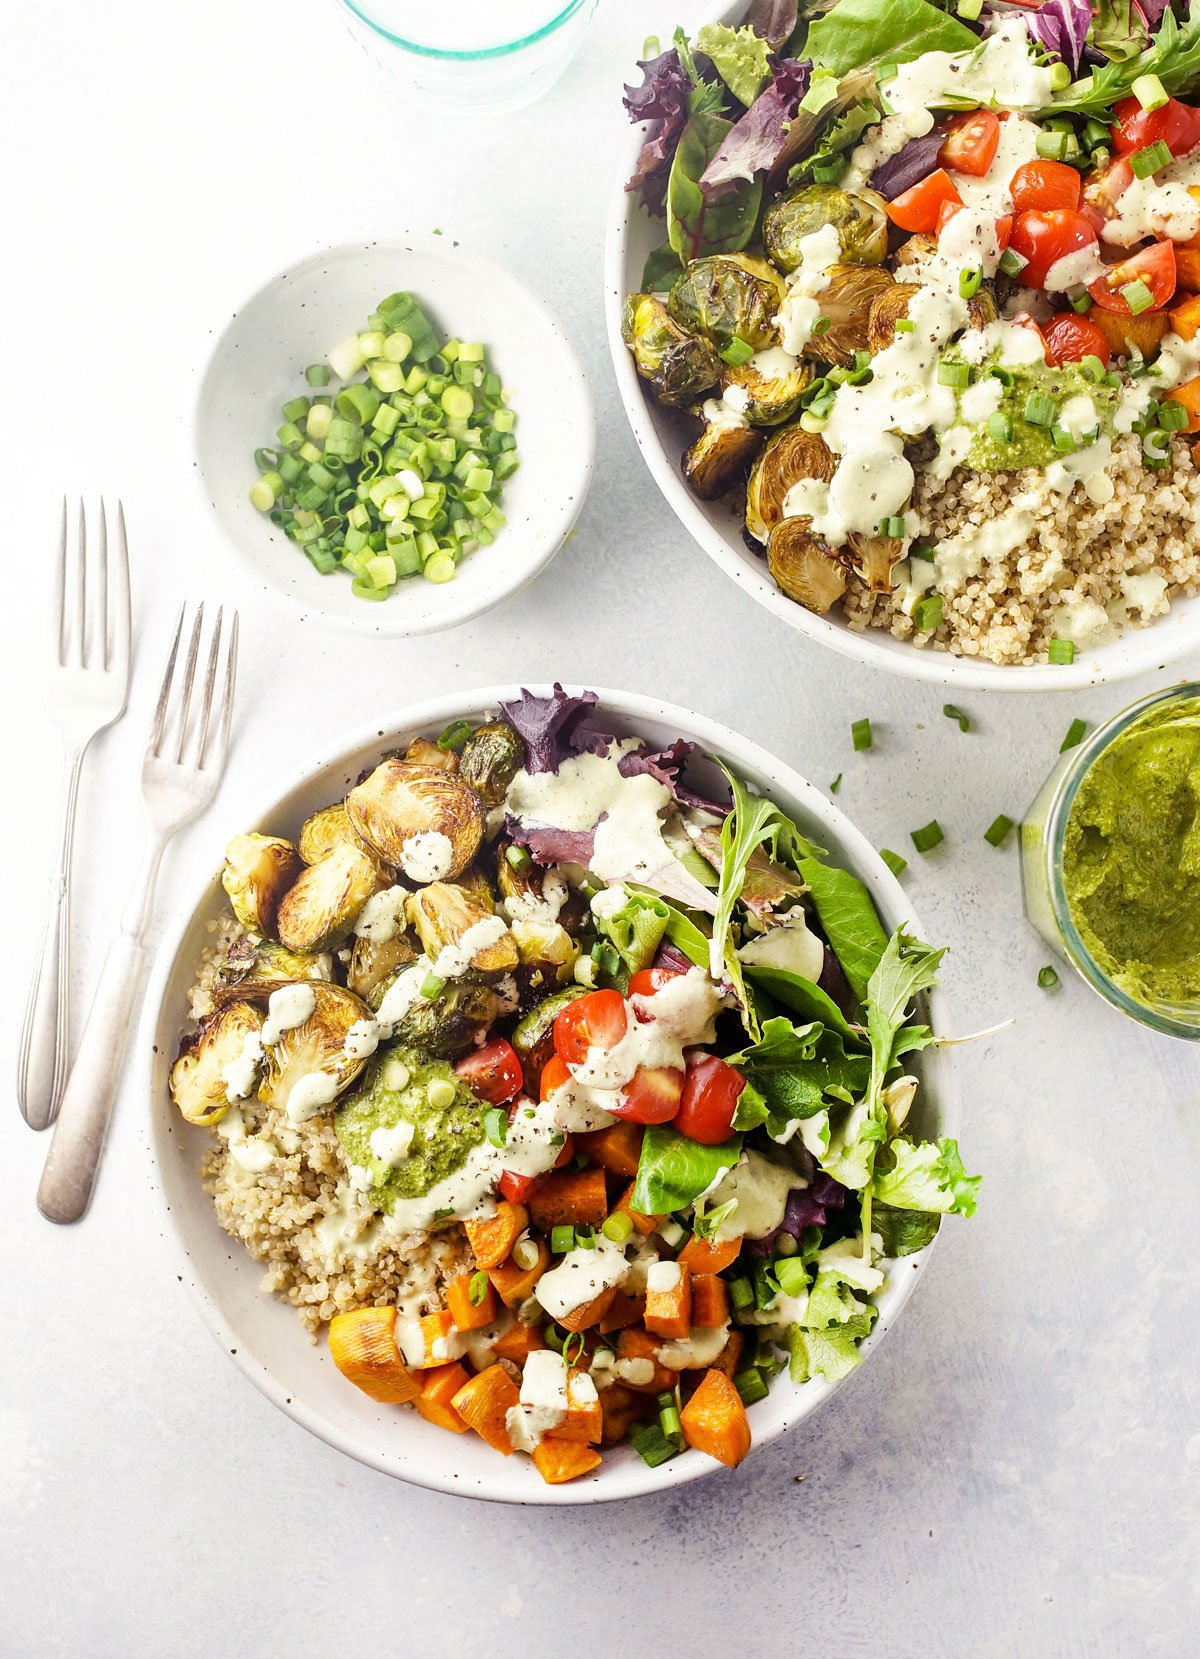 make-ahead-detox-roasted-vegetable-quinoa-bowls